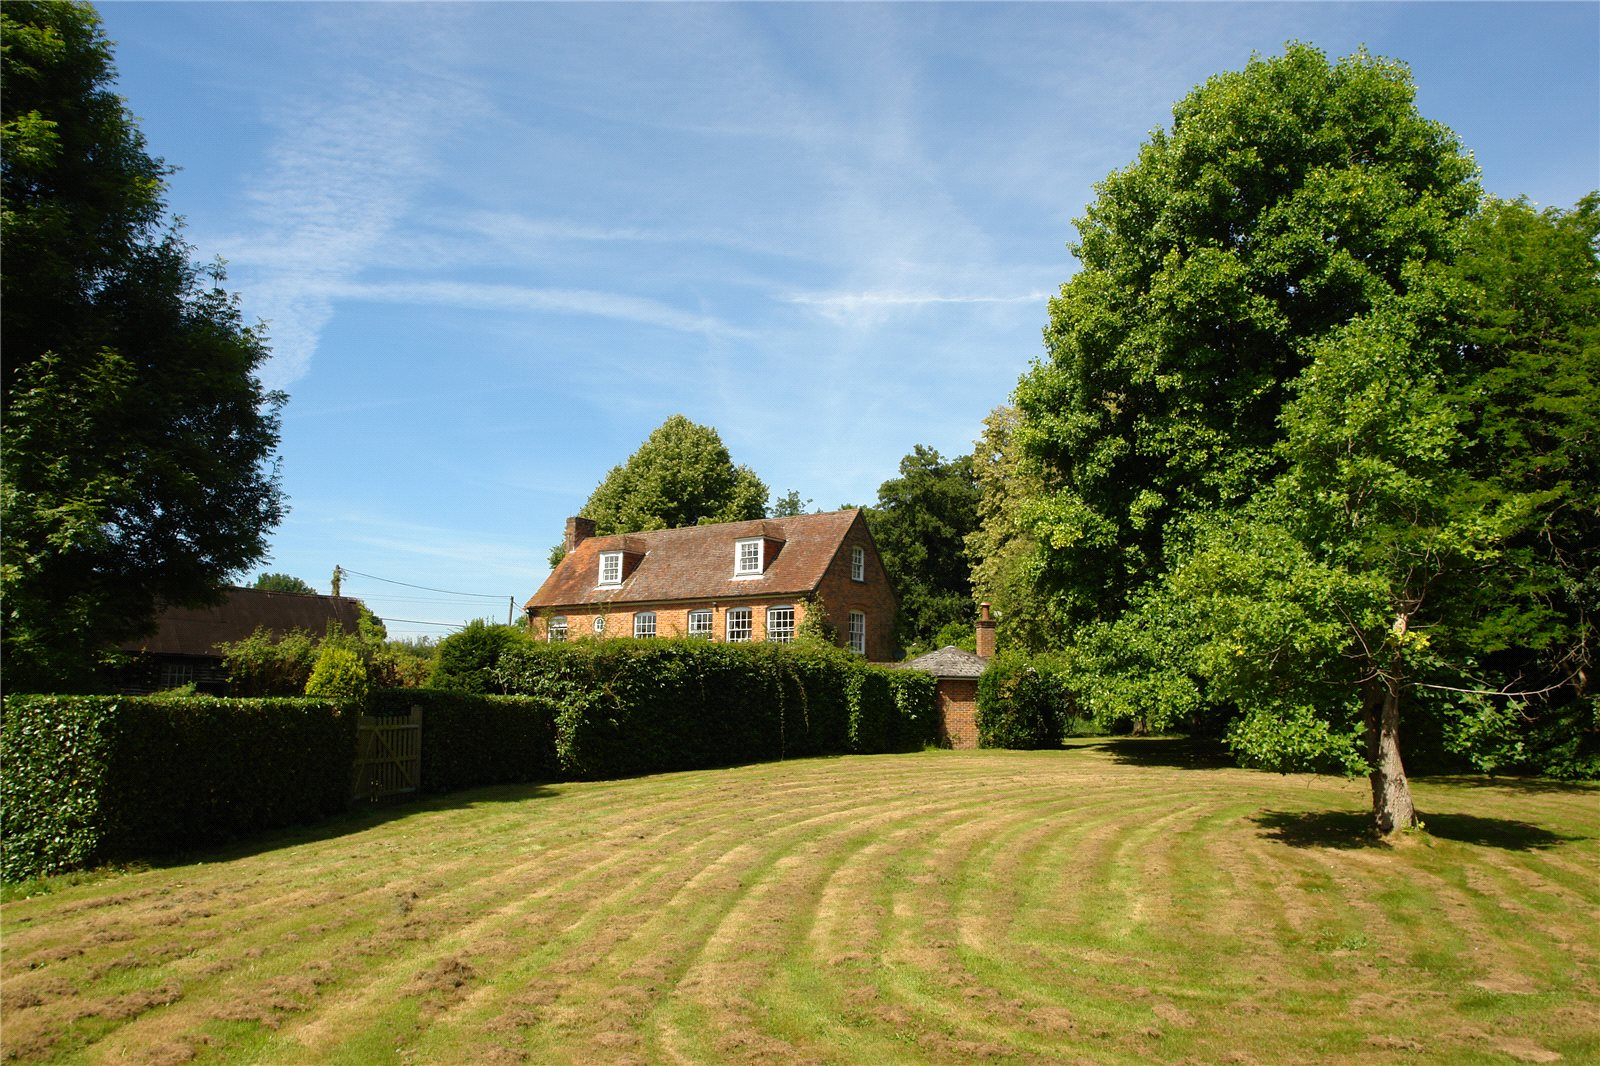 Additional photo for property listing at Mill Lane, Sherfield English, Romsey, Hampshire, SO51 Romsey, Anh Quốc